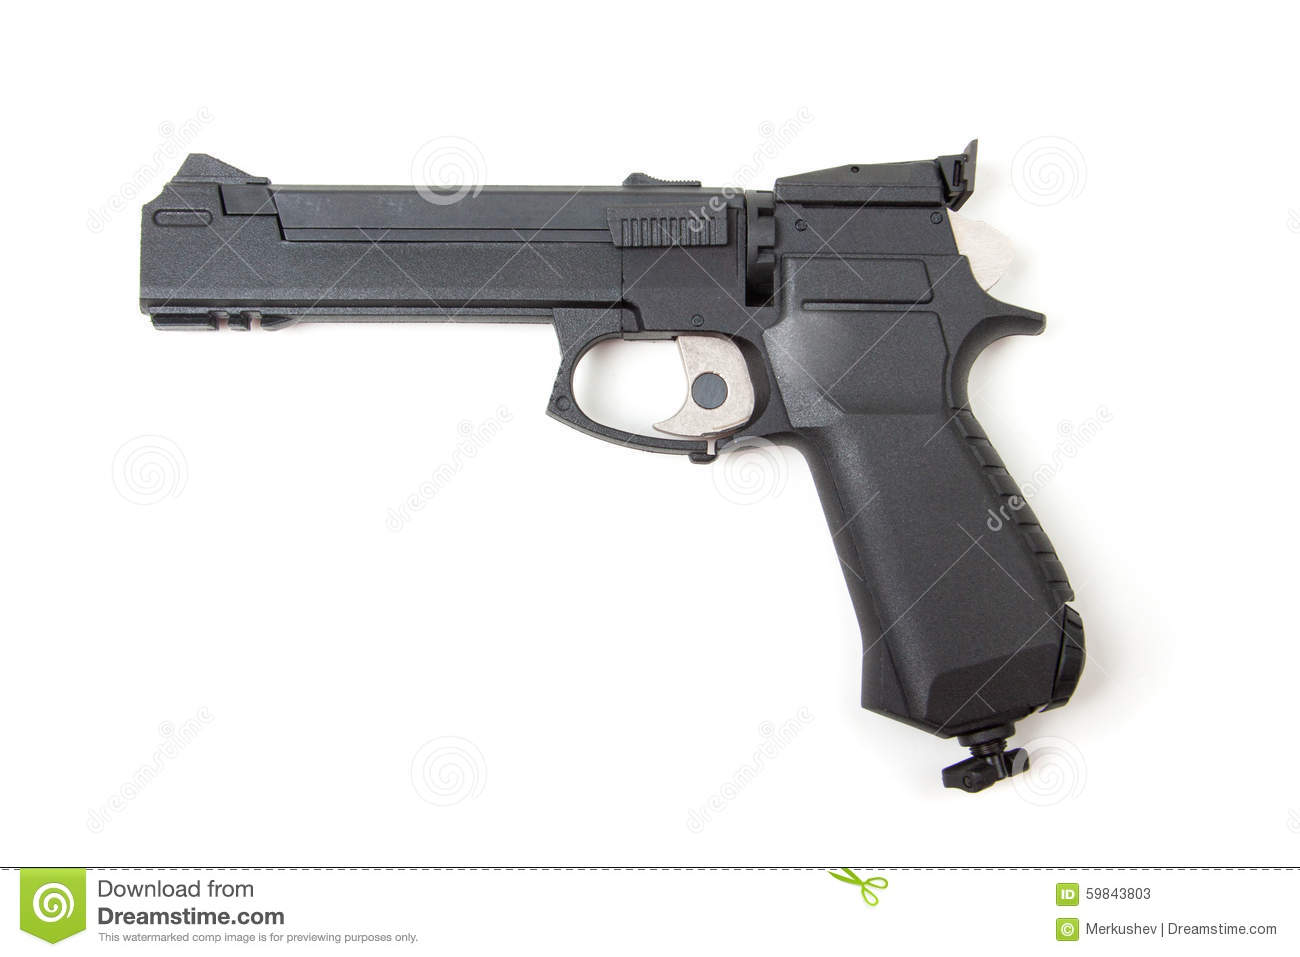 gun white background - photo #29